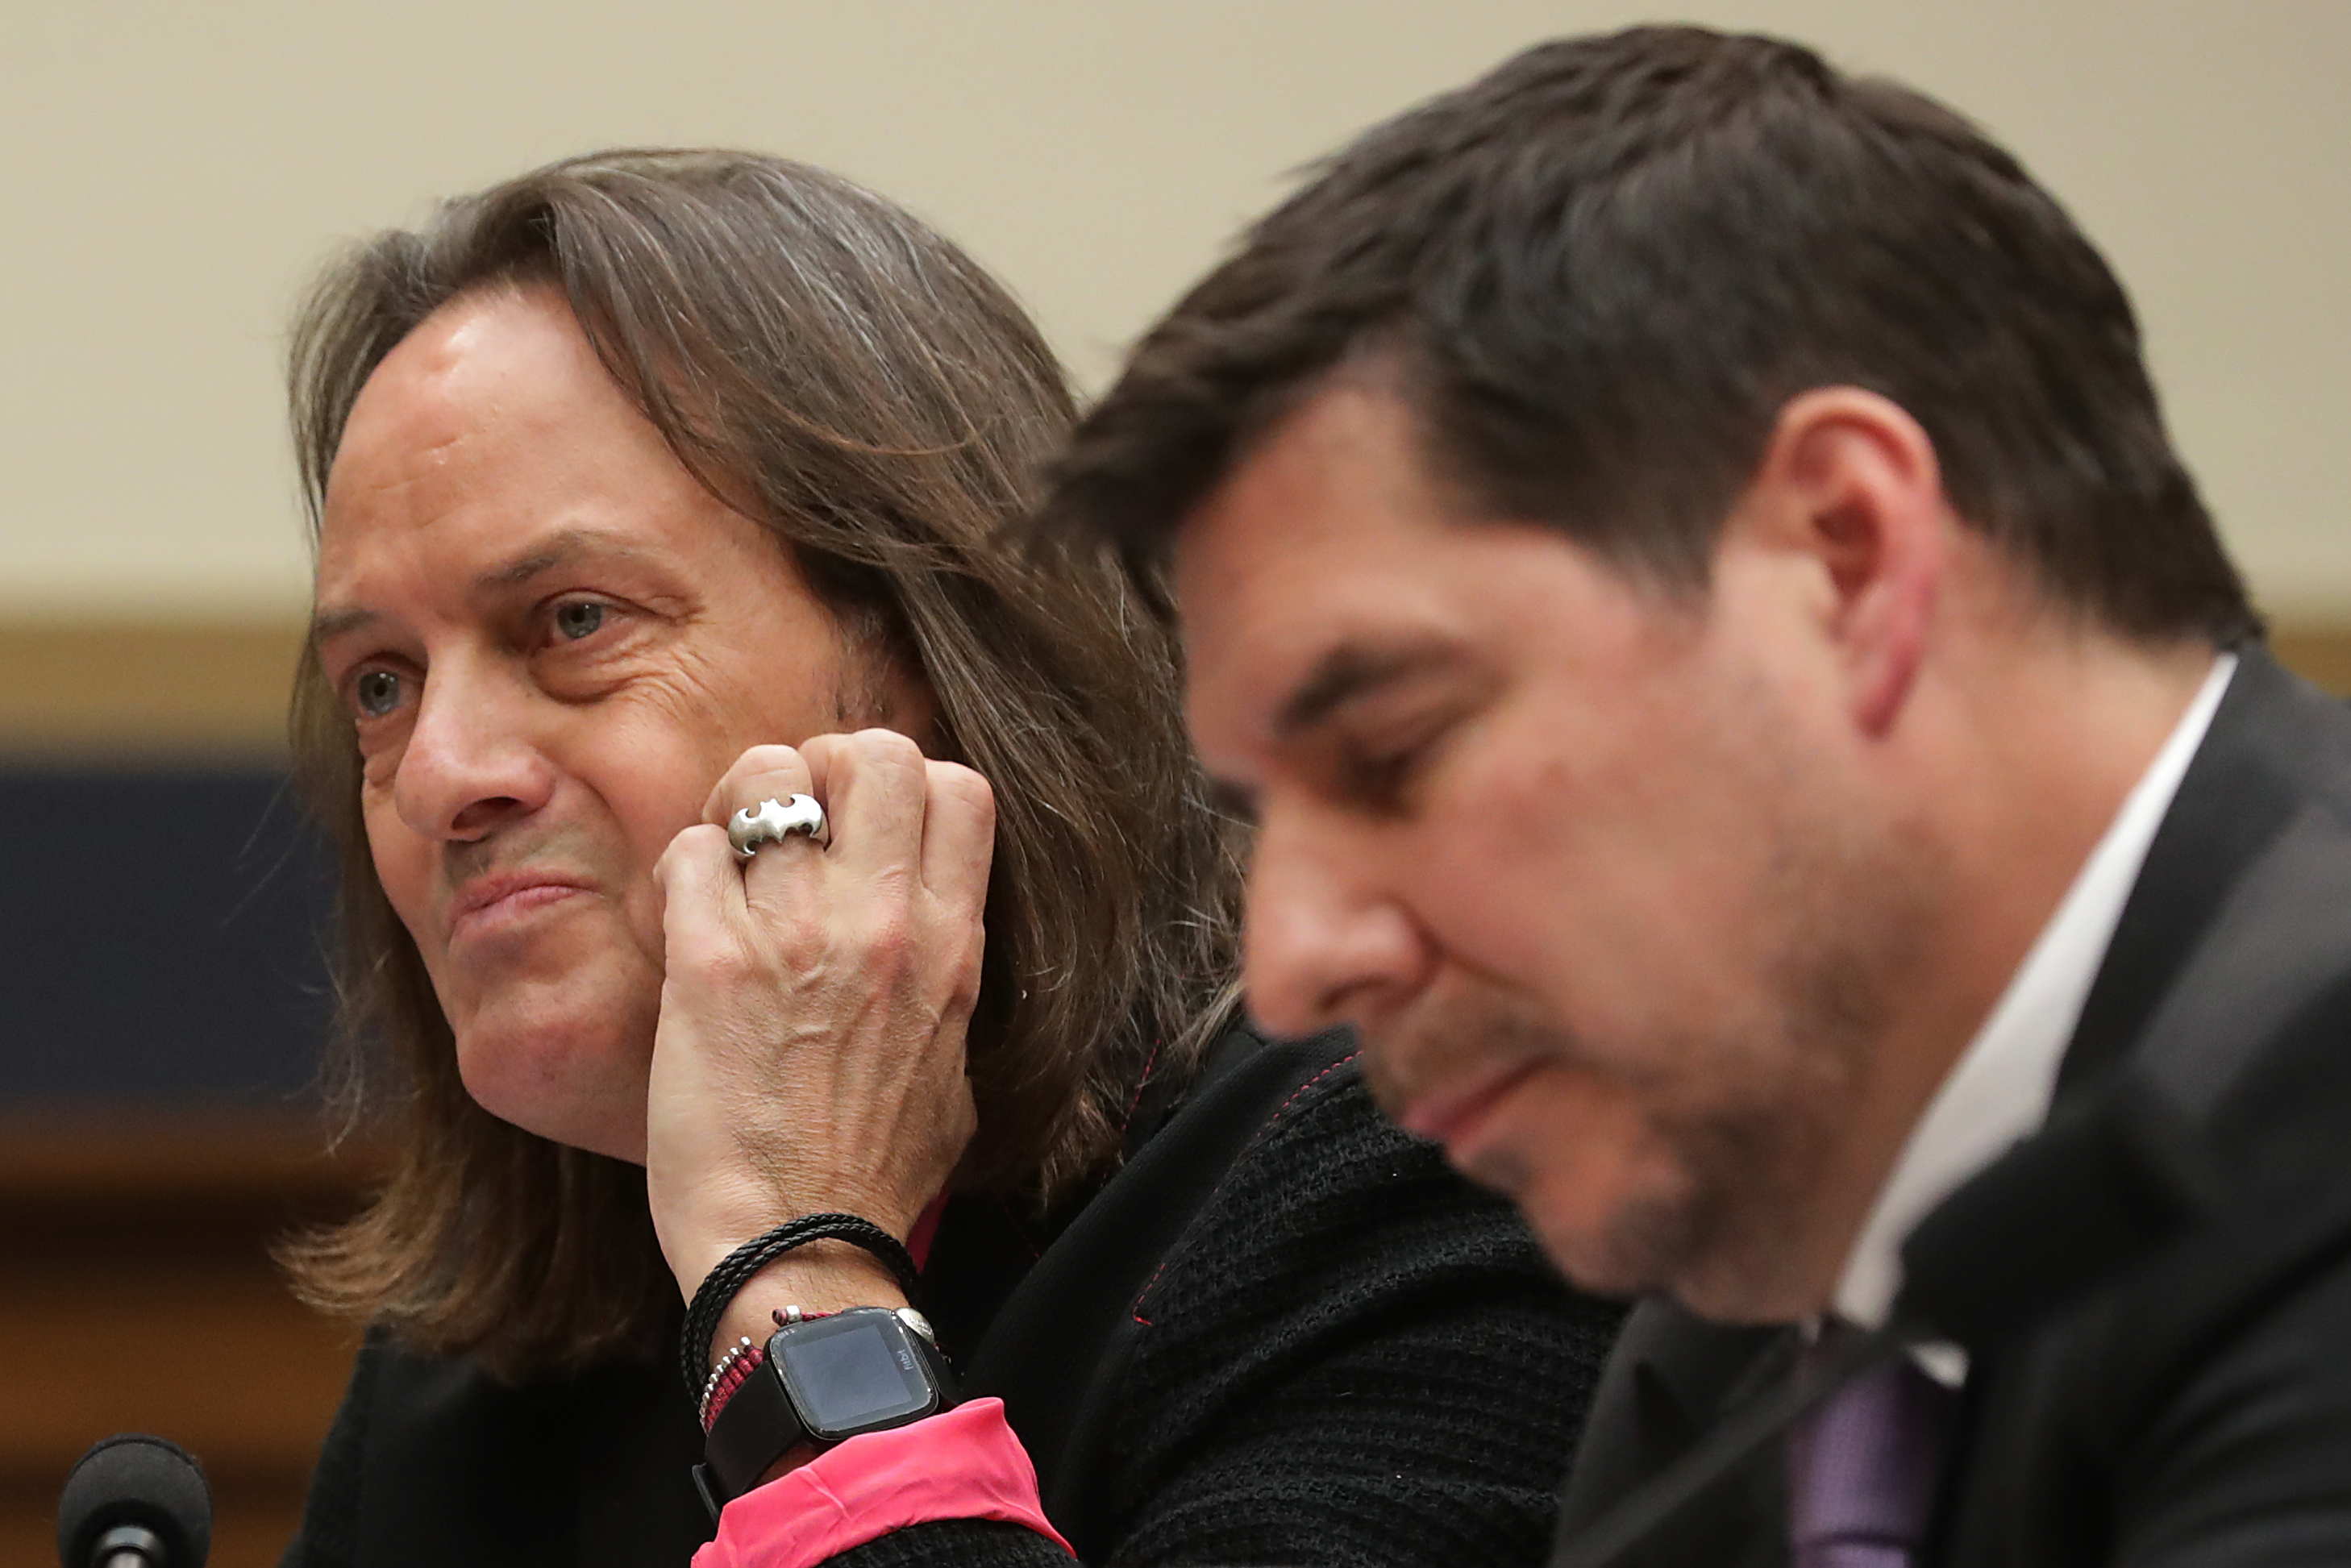 Ten state attorneys general are suing to block T-Mobile